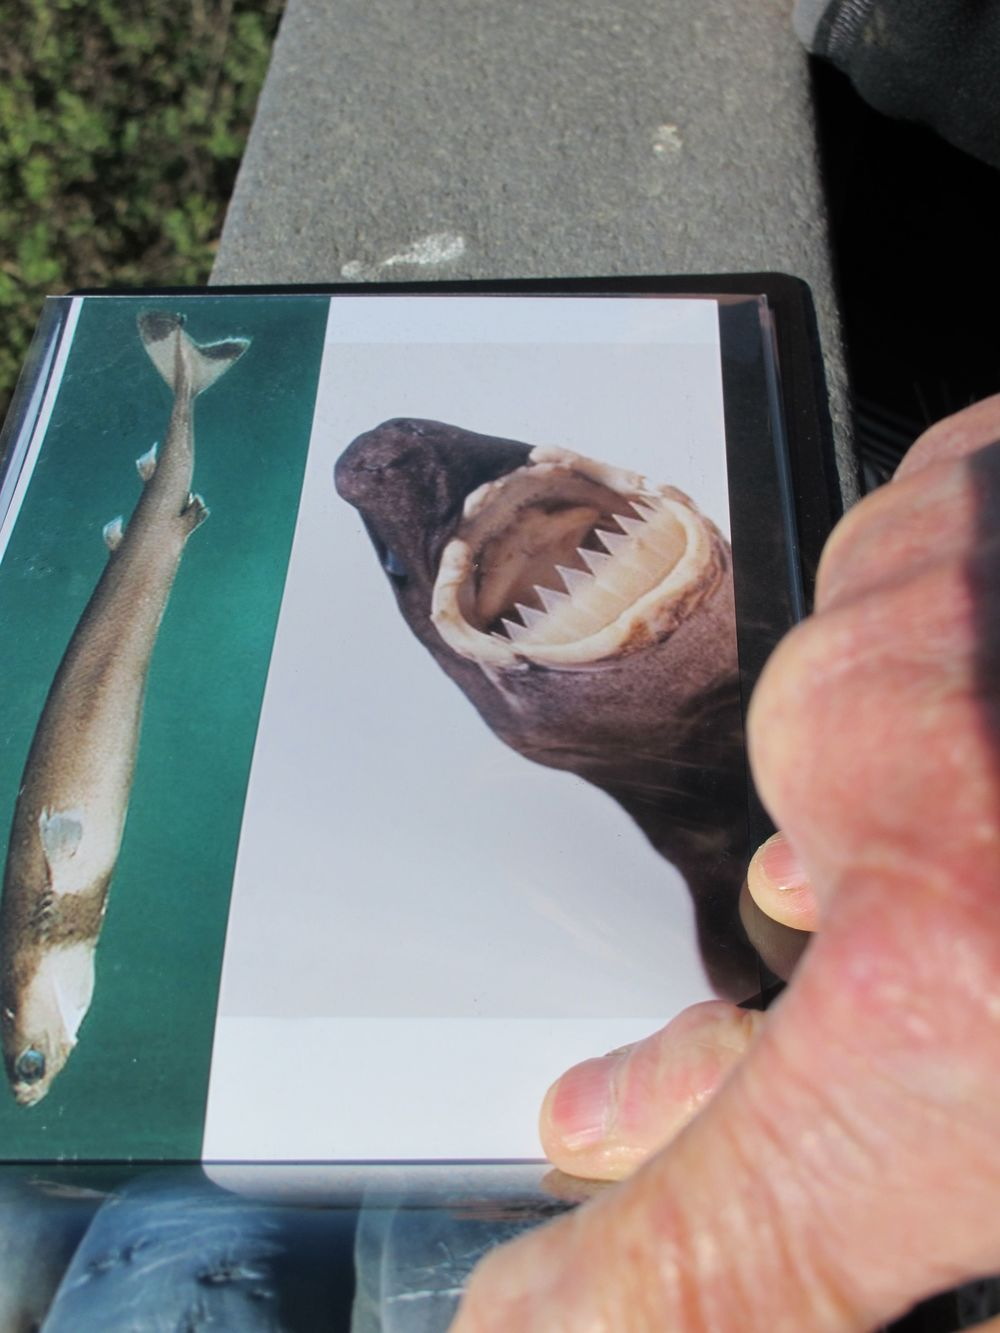 A naturalist on the beach showed us a photo of a cookie-cutter shark.